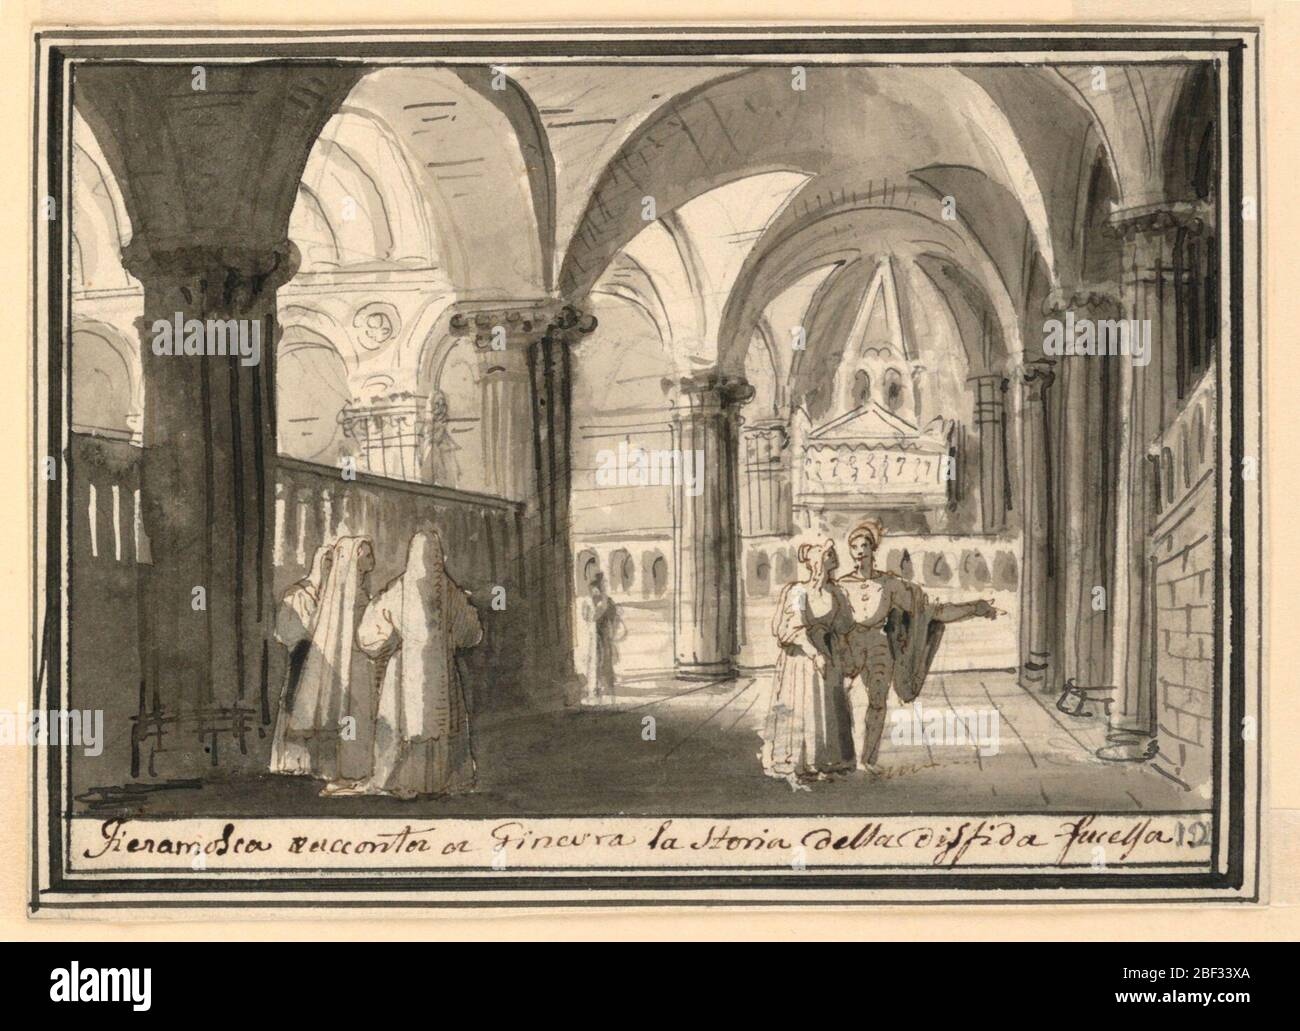 Stage Design Interior Of Church Horizontal Rectangle Interior Of Church With Two Groups Of People In Foreground At Left Group Of Nuns At Right Man Gestures With Extended Arm Woman Watches Him